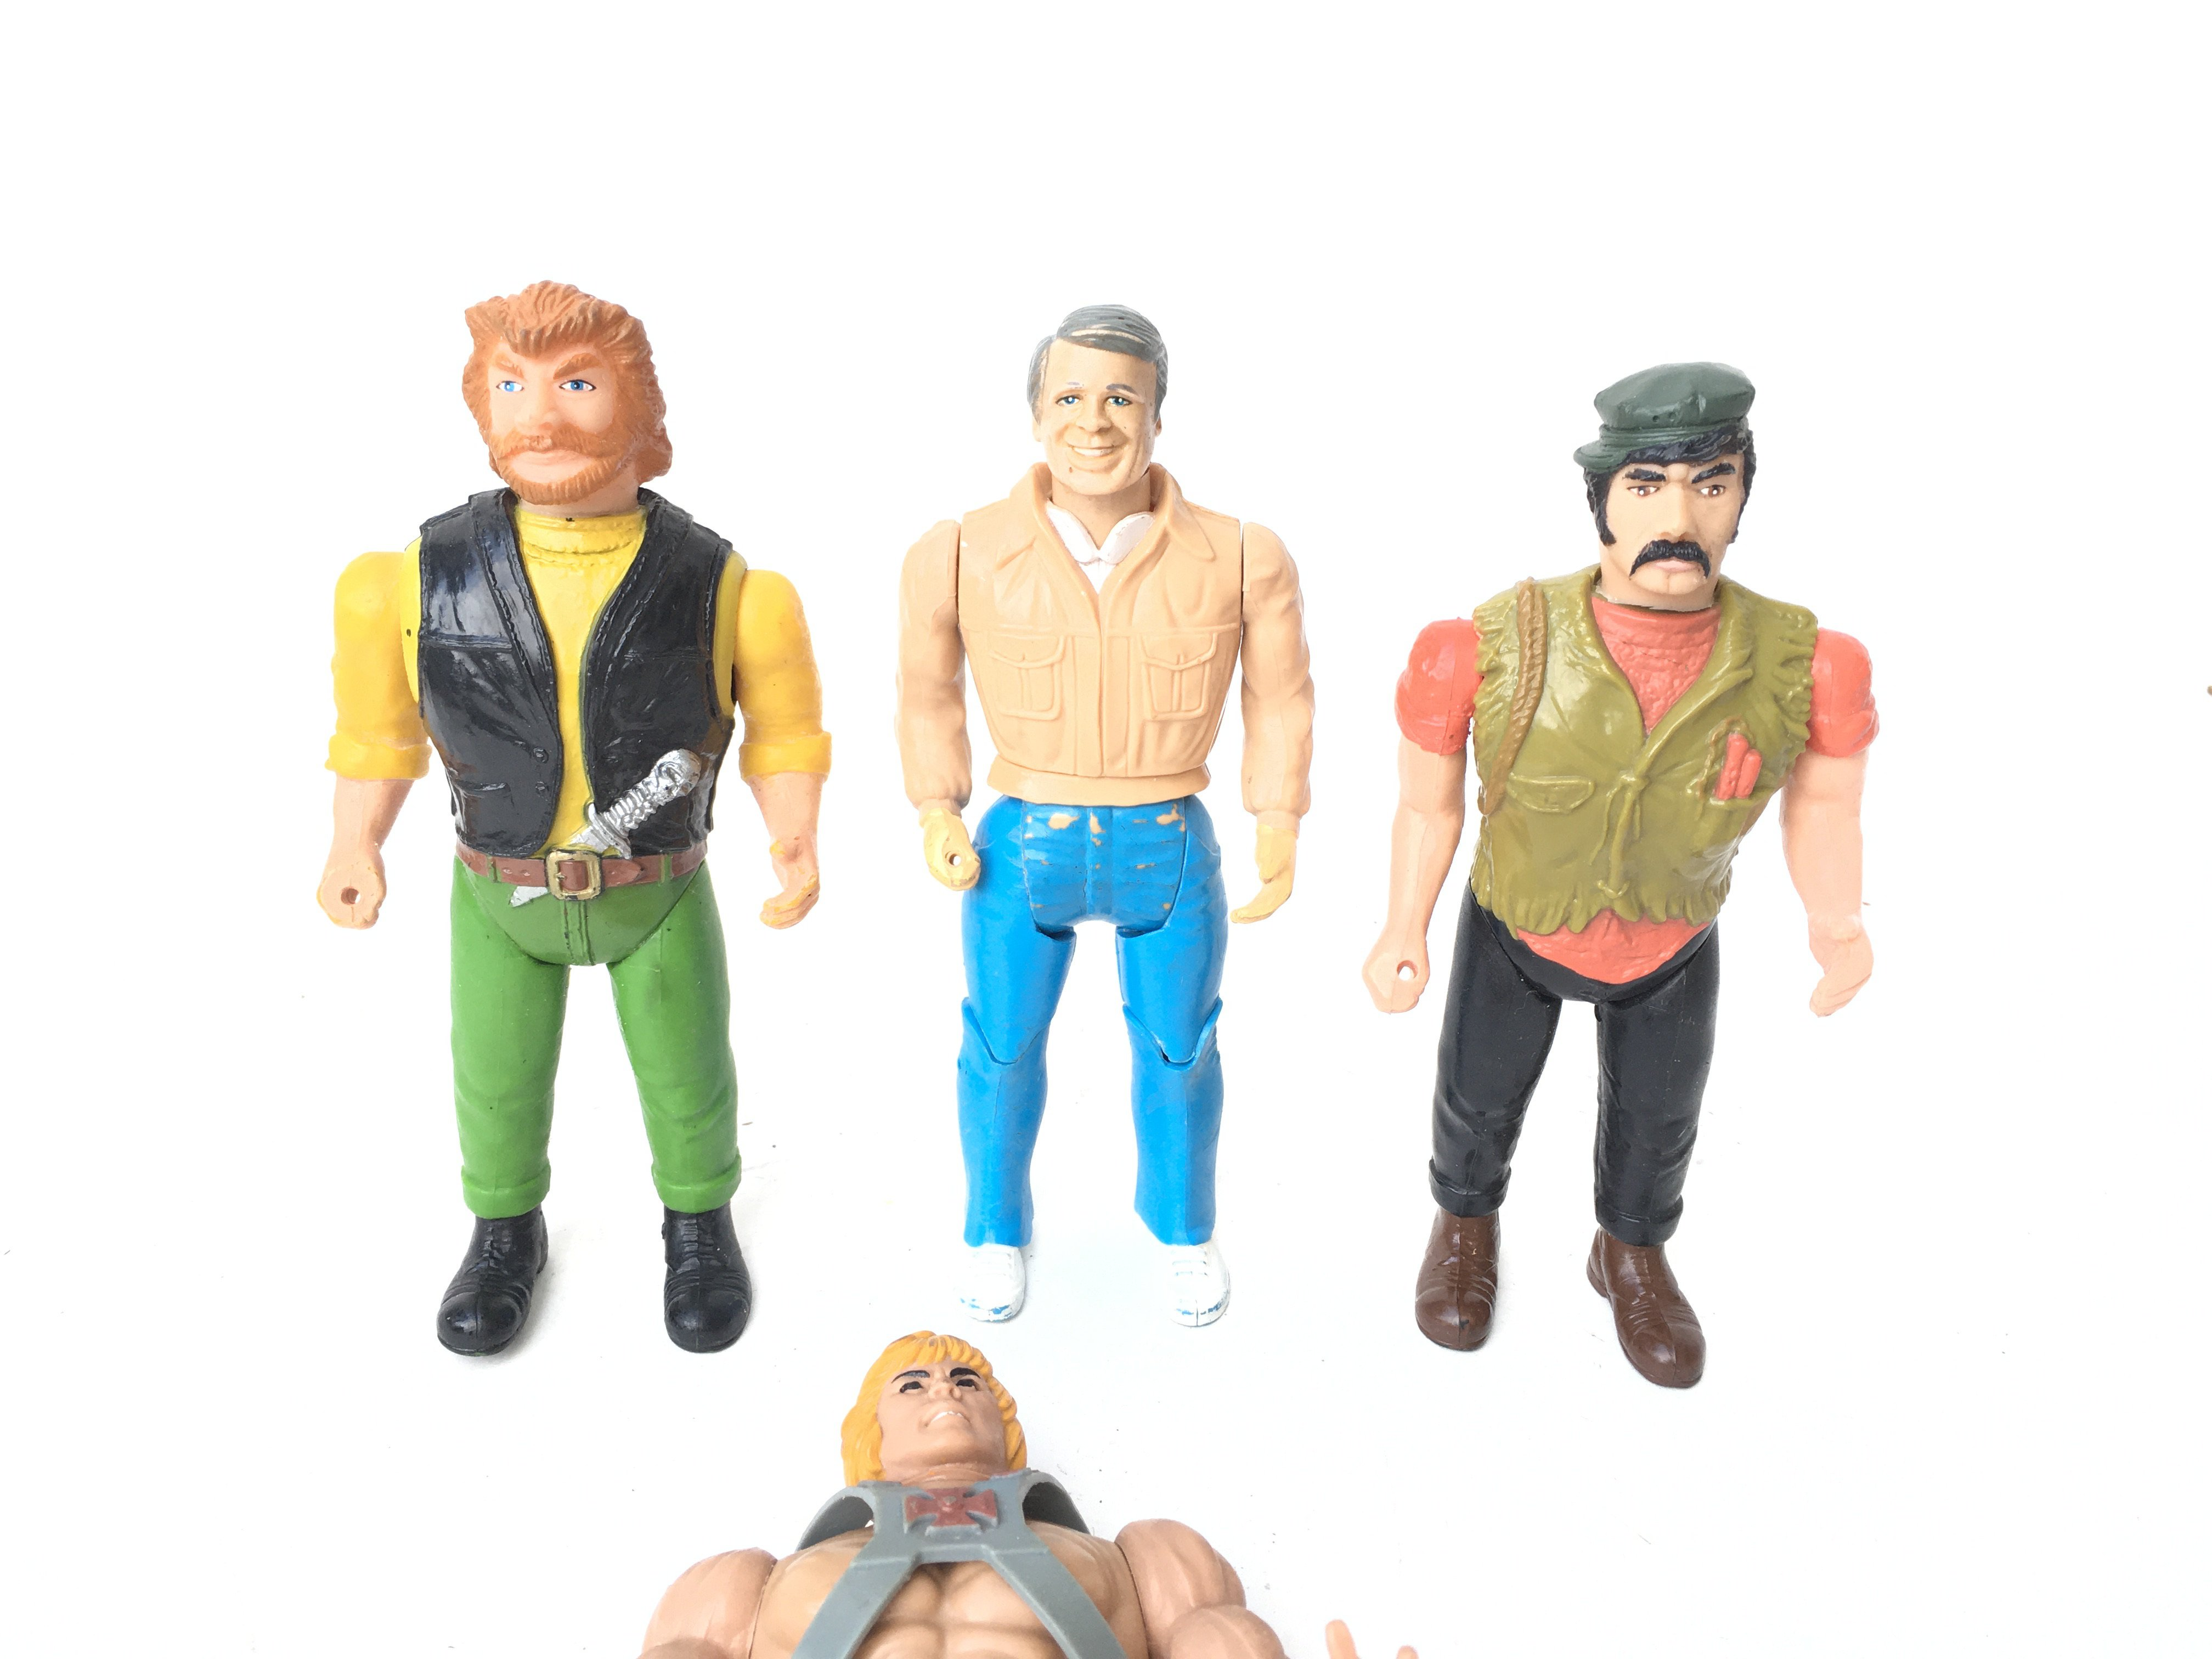 3 X The A-Team Figures and a Broken He-Man Figure. - Image 2 of 3